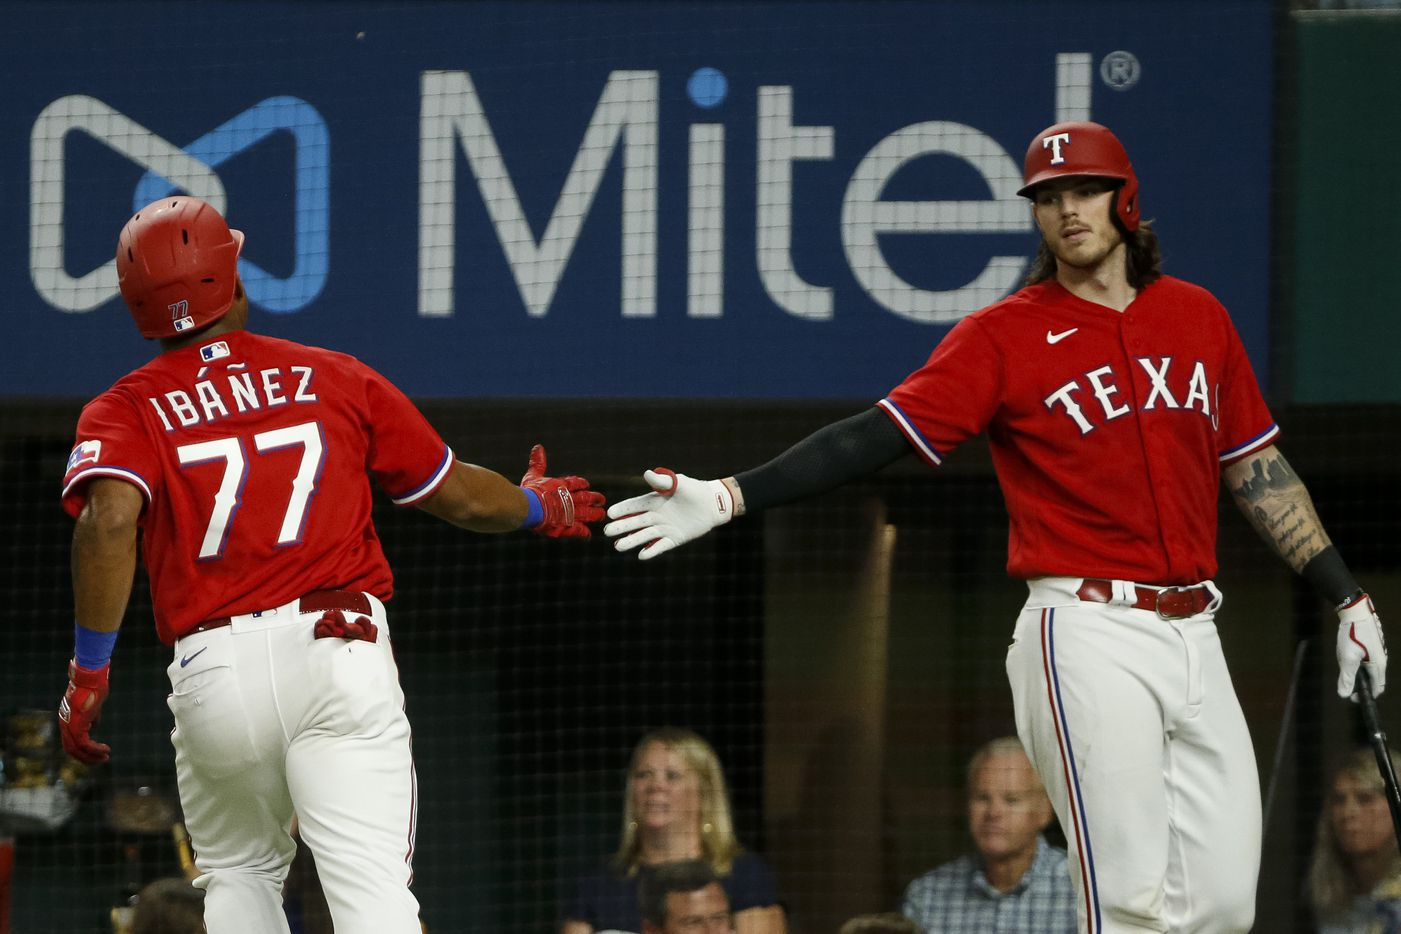 Texas Rangers designated hitter Andy Ibanez (77) high-fives Texas Rangers catcher Jonah Heim (28) after scoring a run during the sixth inning against the Kansas City Royals at Globe Life Field on Friday, June 25, 2021, in Arlington. (Elias Valverde II/The Dallas Morning News)